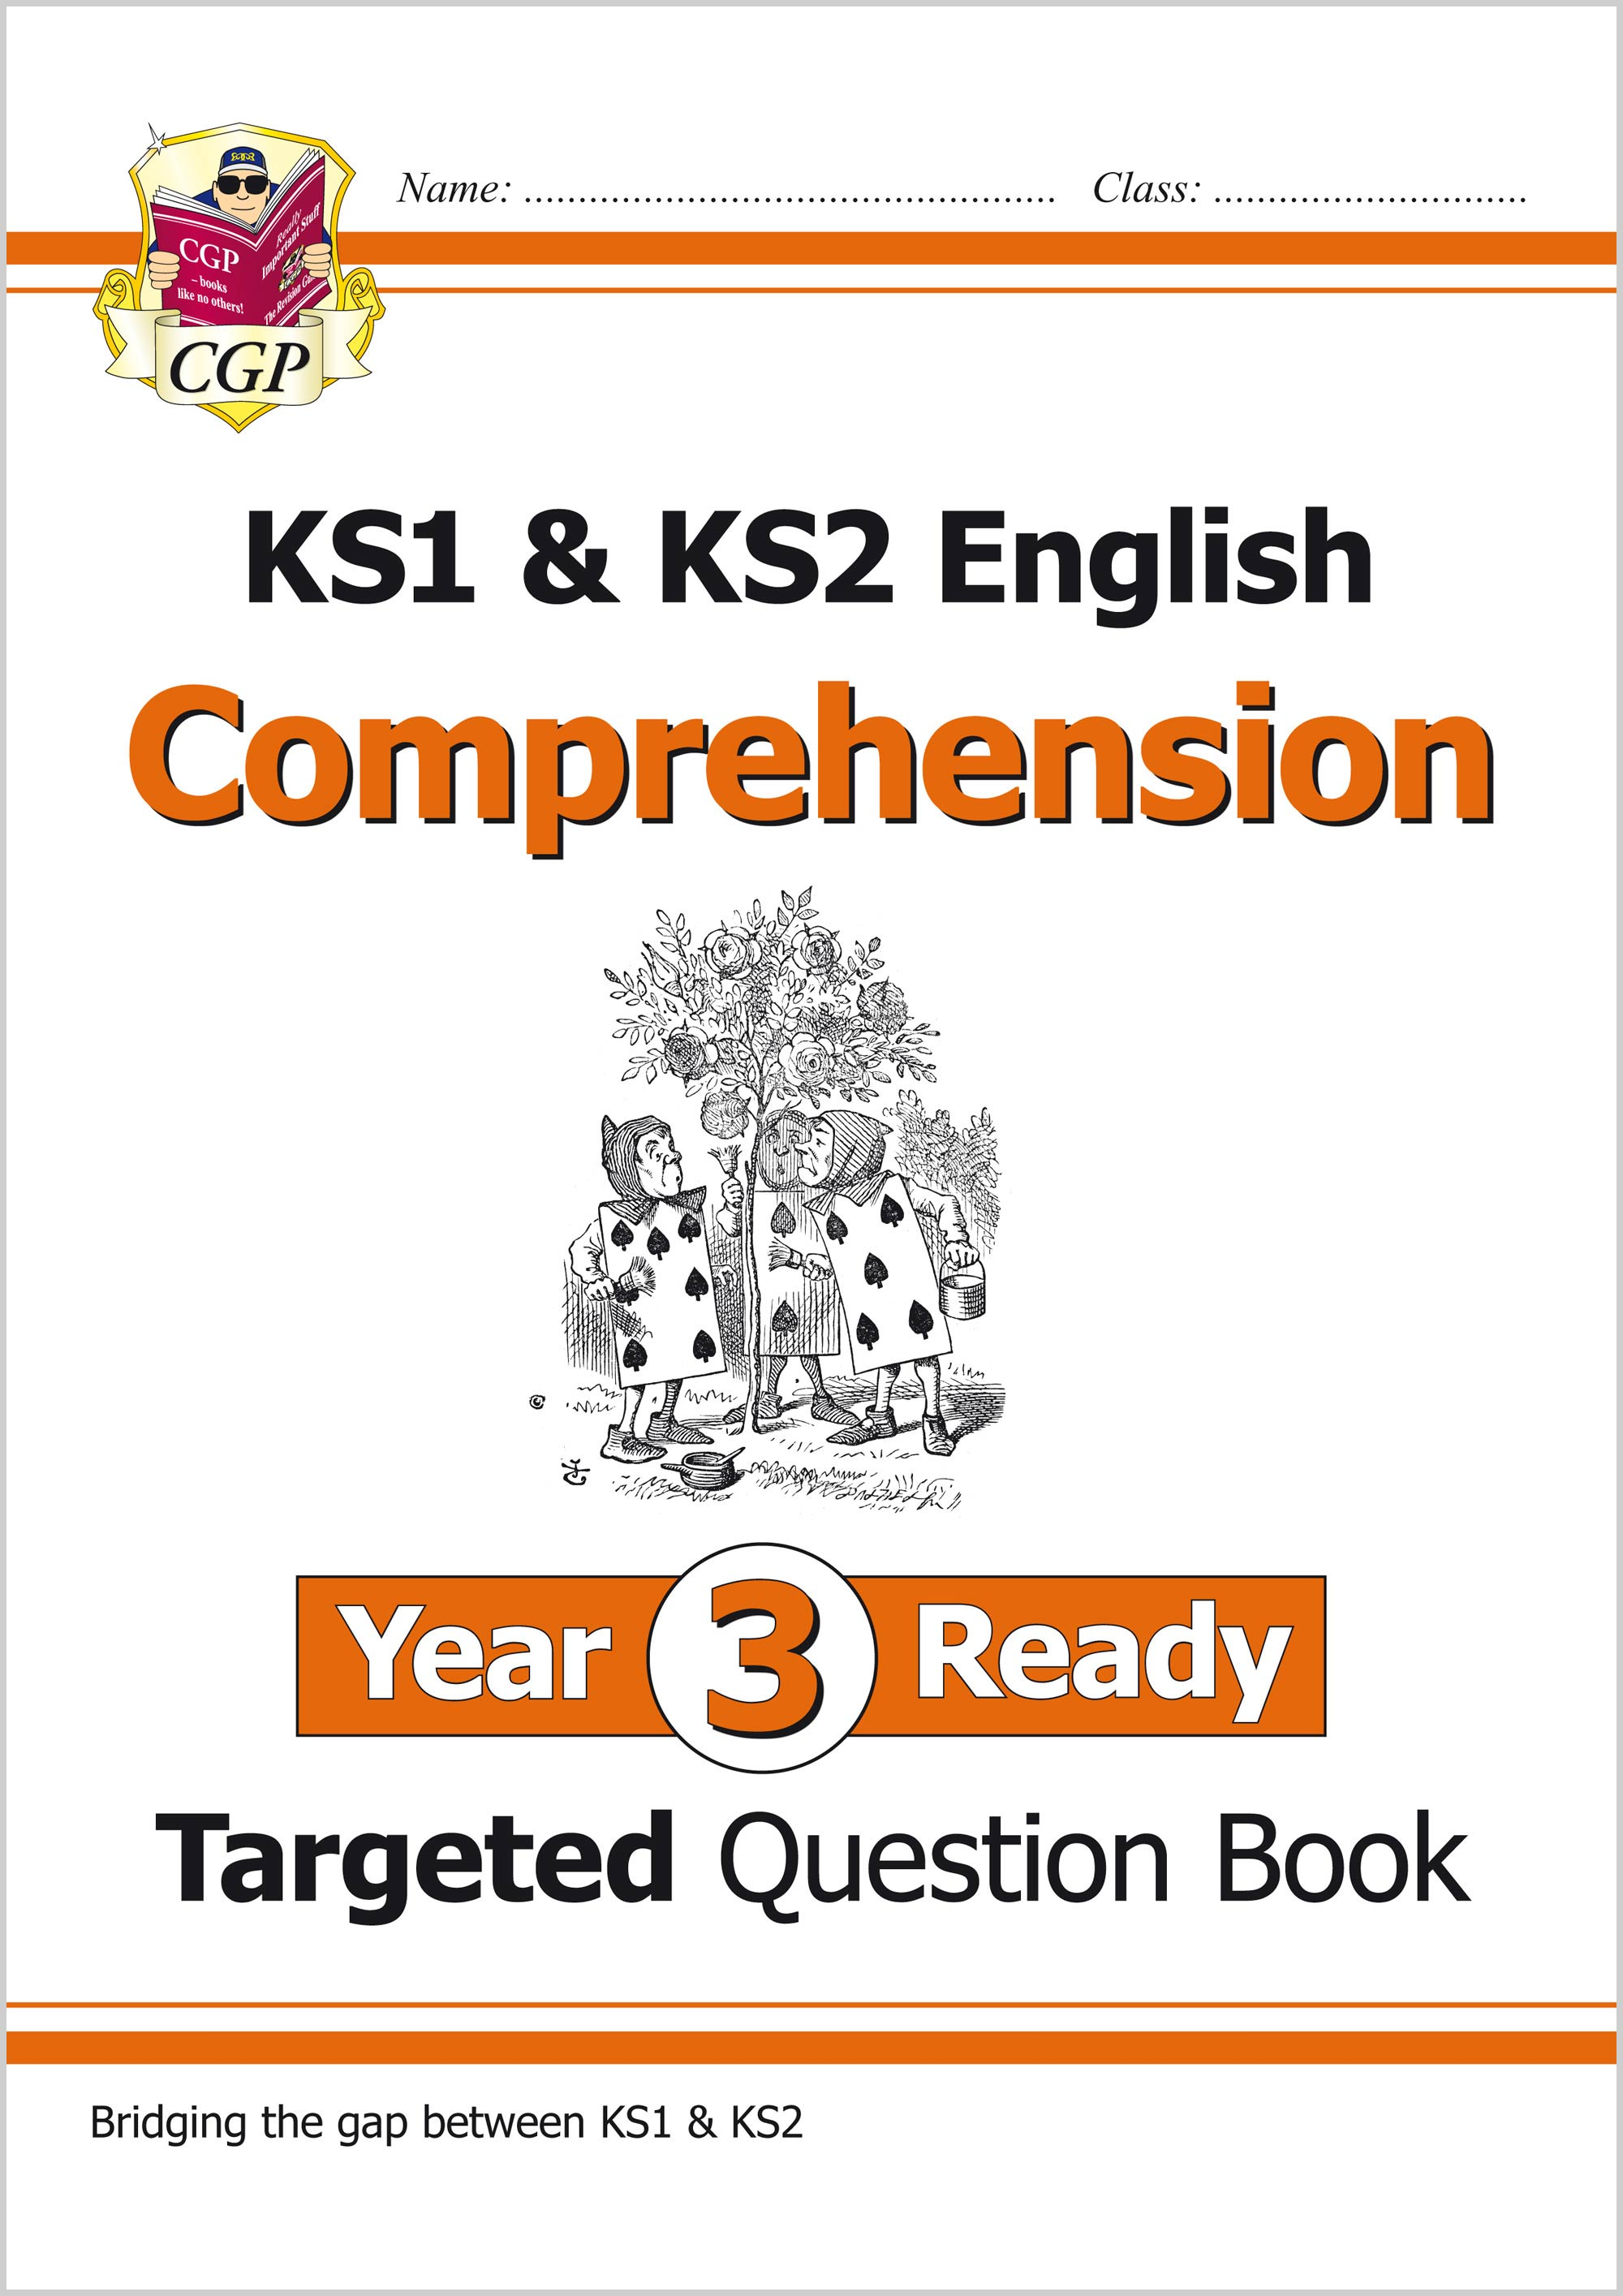 EH2CW11 - KS1 & KS2 English Targeted Question Book: Comprehension - Year 3 Ready